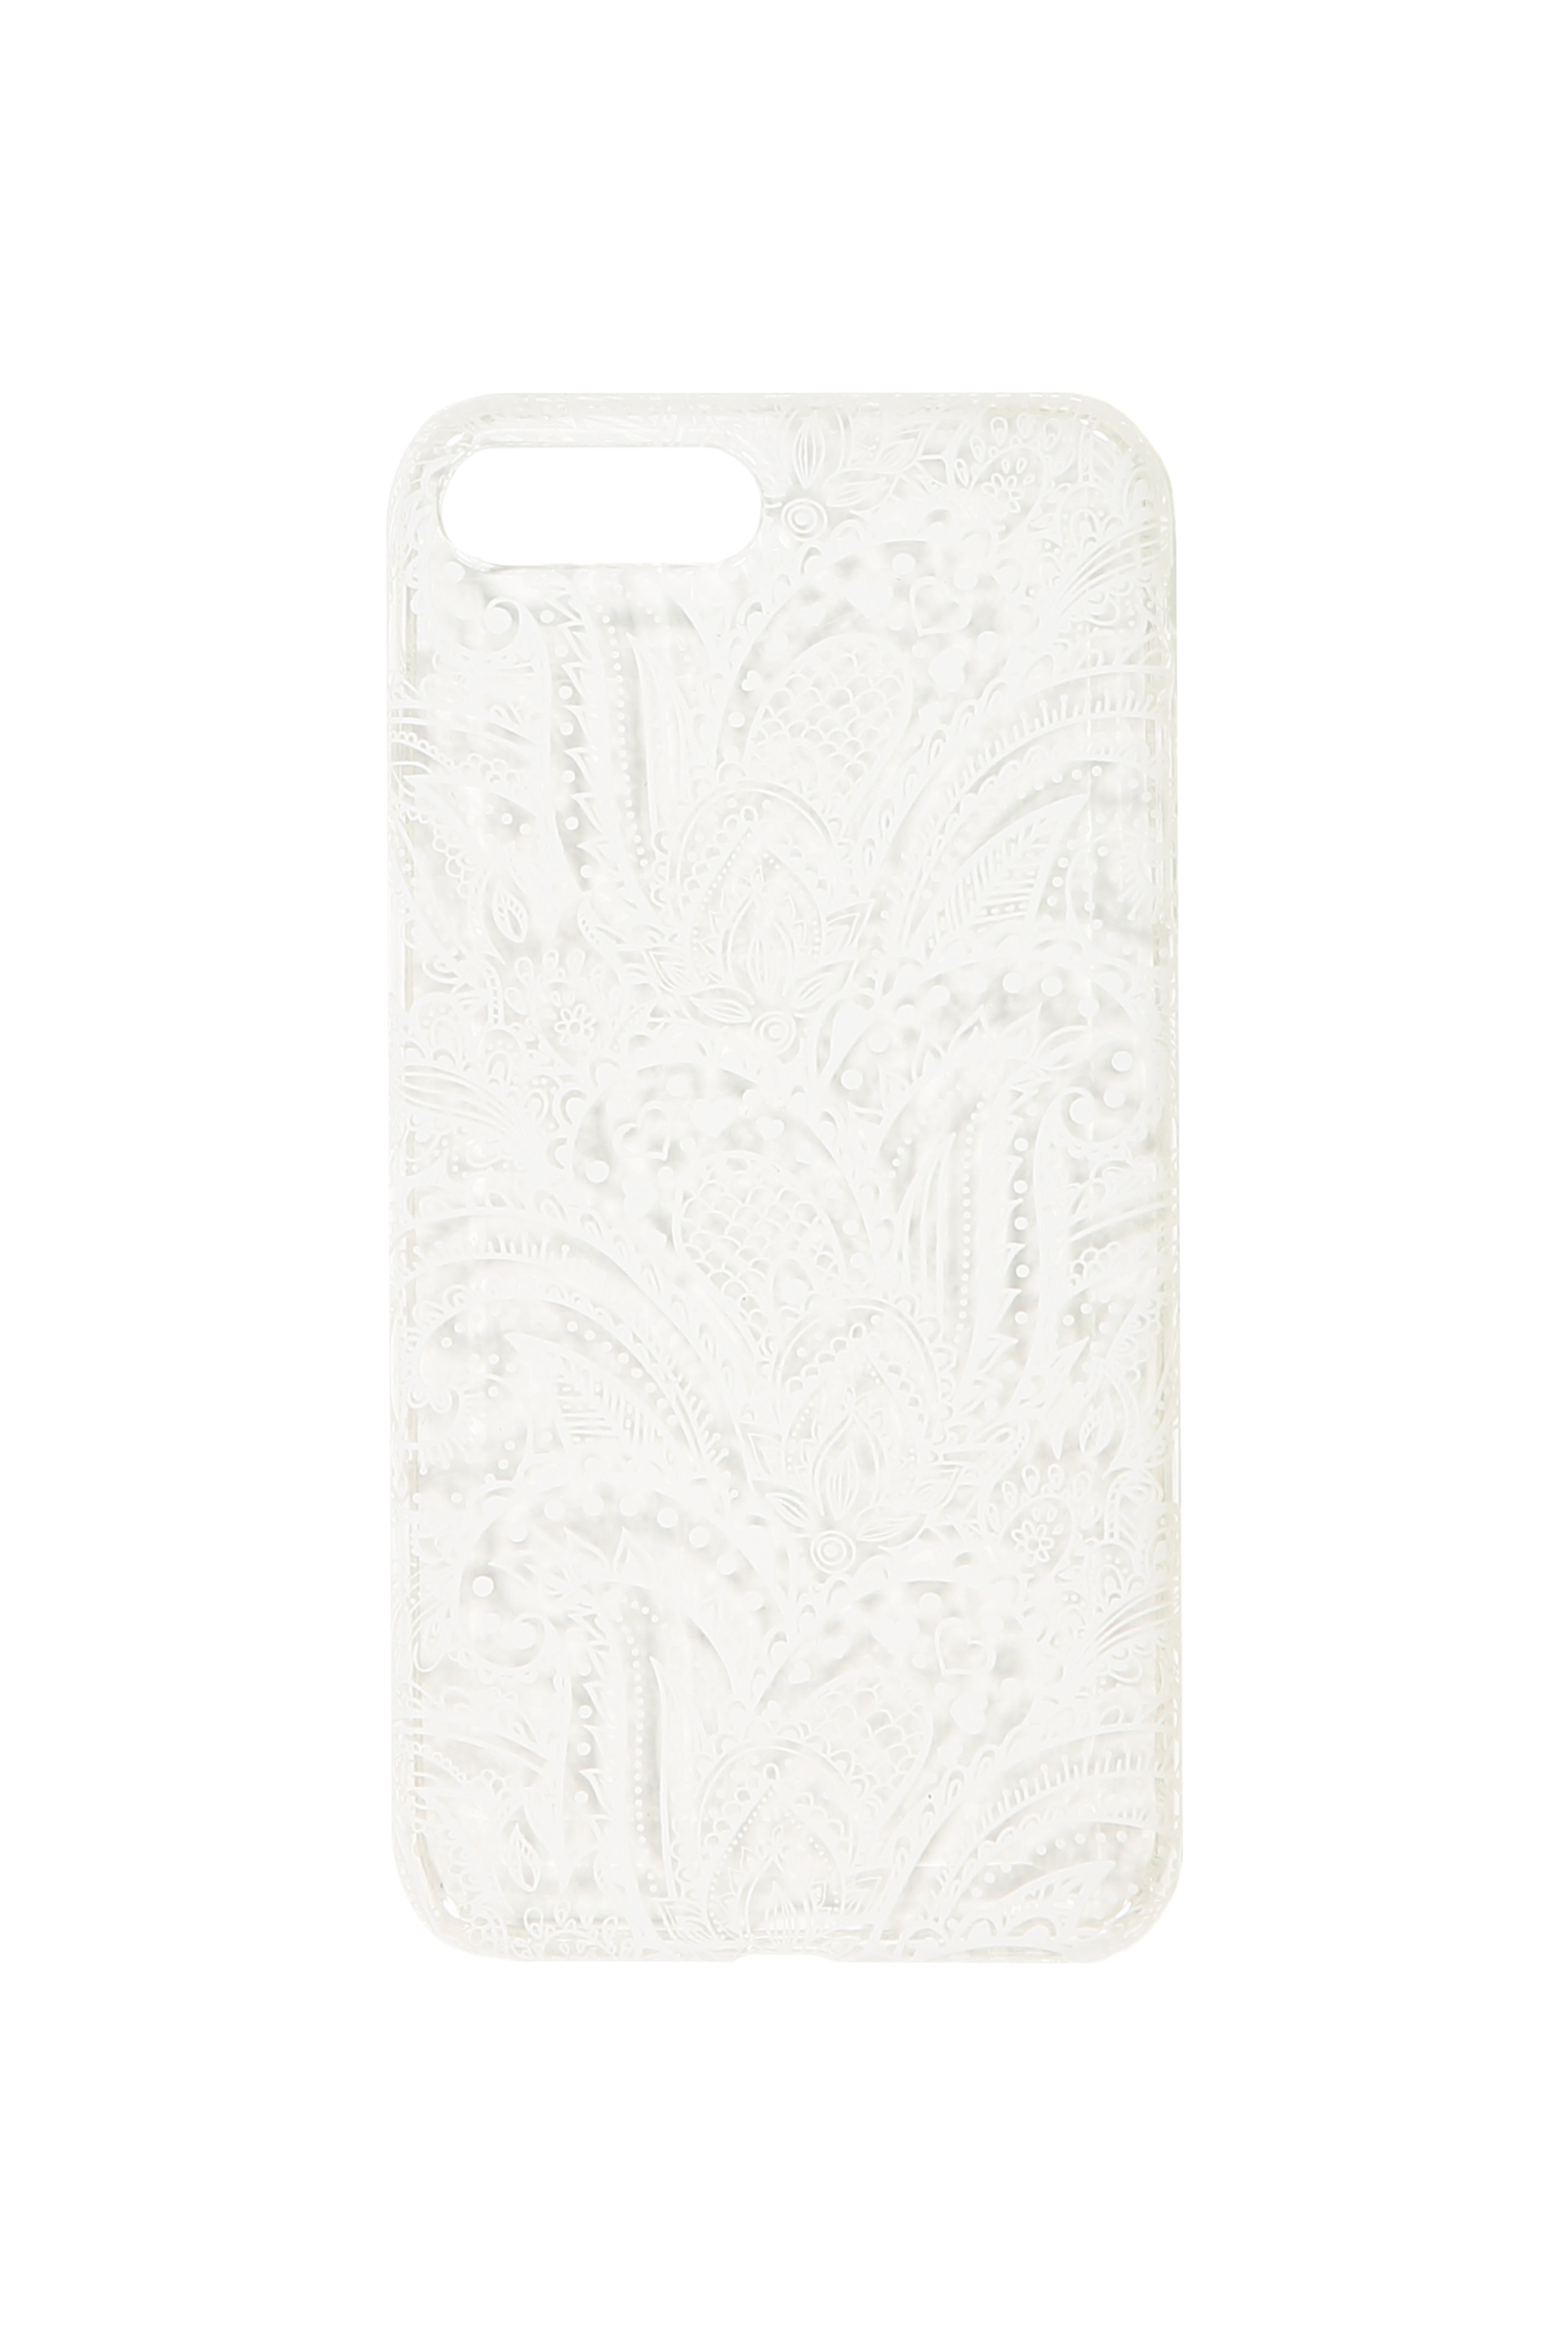 Typo - Transparent Phone Cover 7 And 8 Plus - White lace 9350486573828